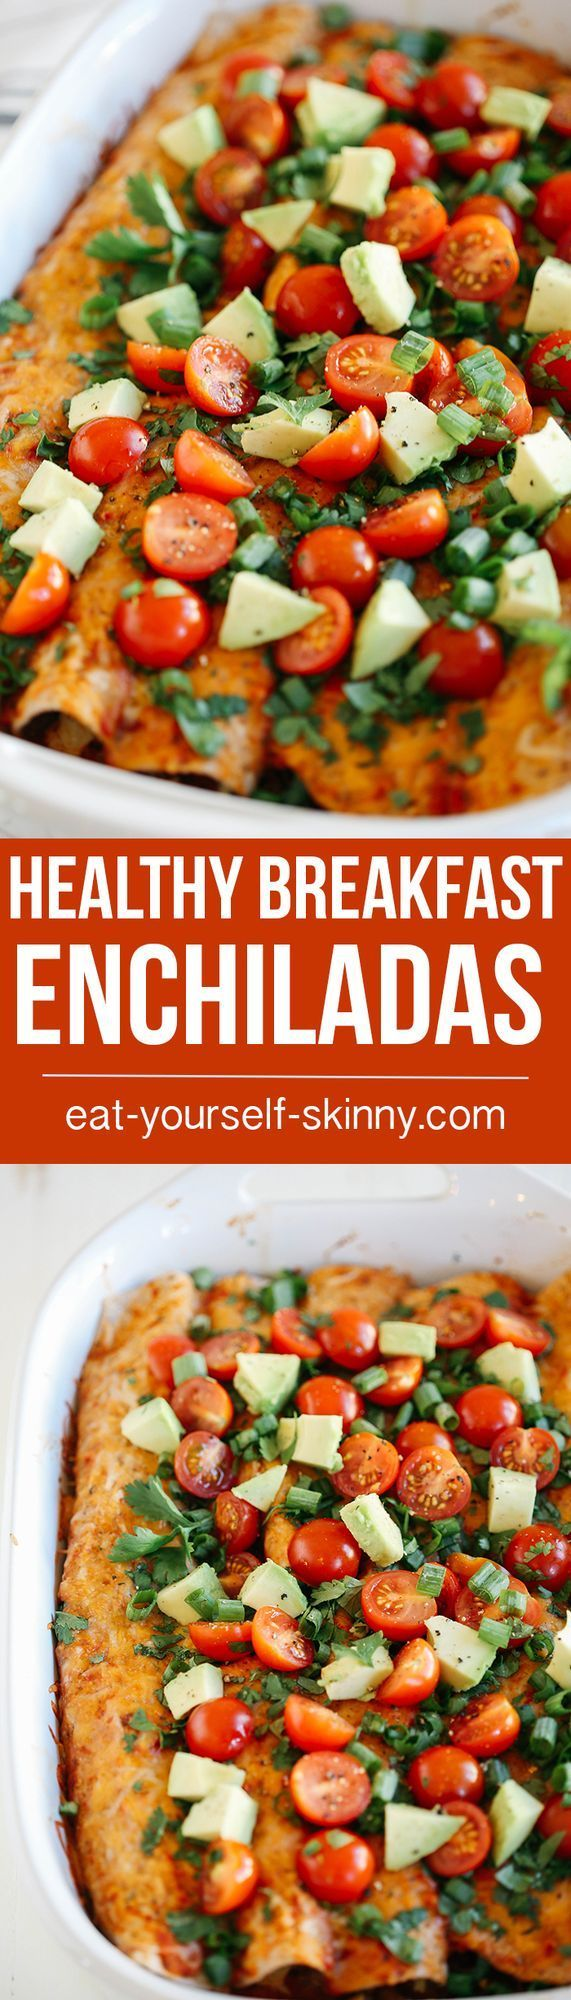 WOW so we need to talk about these enchiladas. Yes BREAKFAST enchiladas. As you know, breakfast is the most important meal of the day so obviously you want to make sure it's good! And these Healthy Br